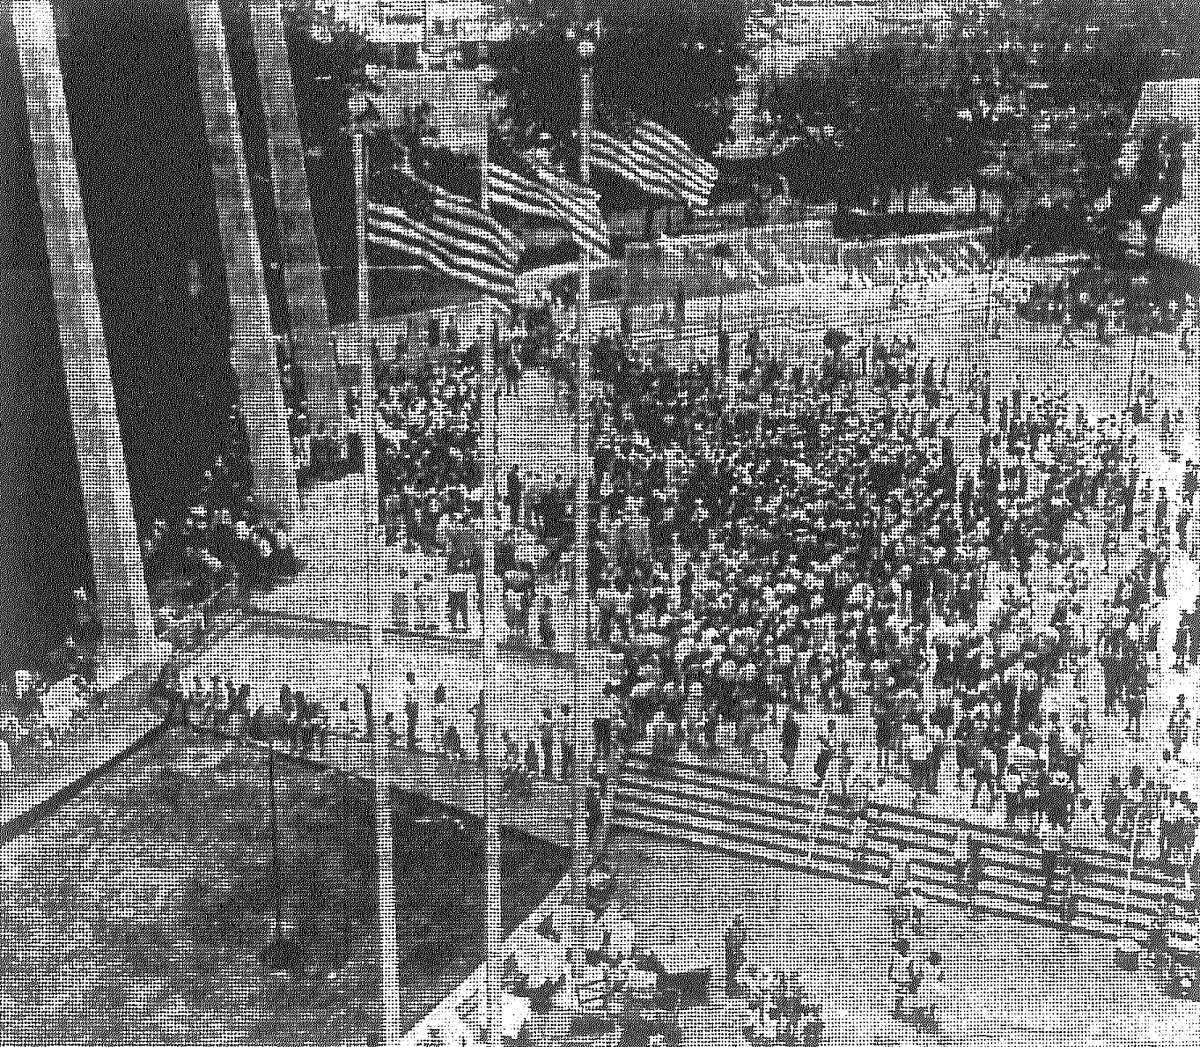 The impressive Confluence Theatrewas one of the architectural wonders on the grounds of HemisFair '68. Published in the San Antonio Light Aug. 7, 1968.